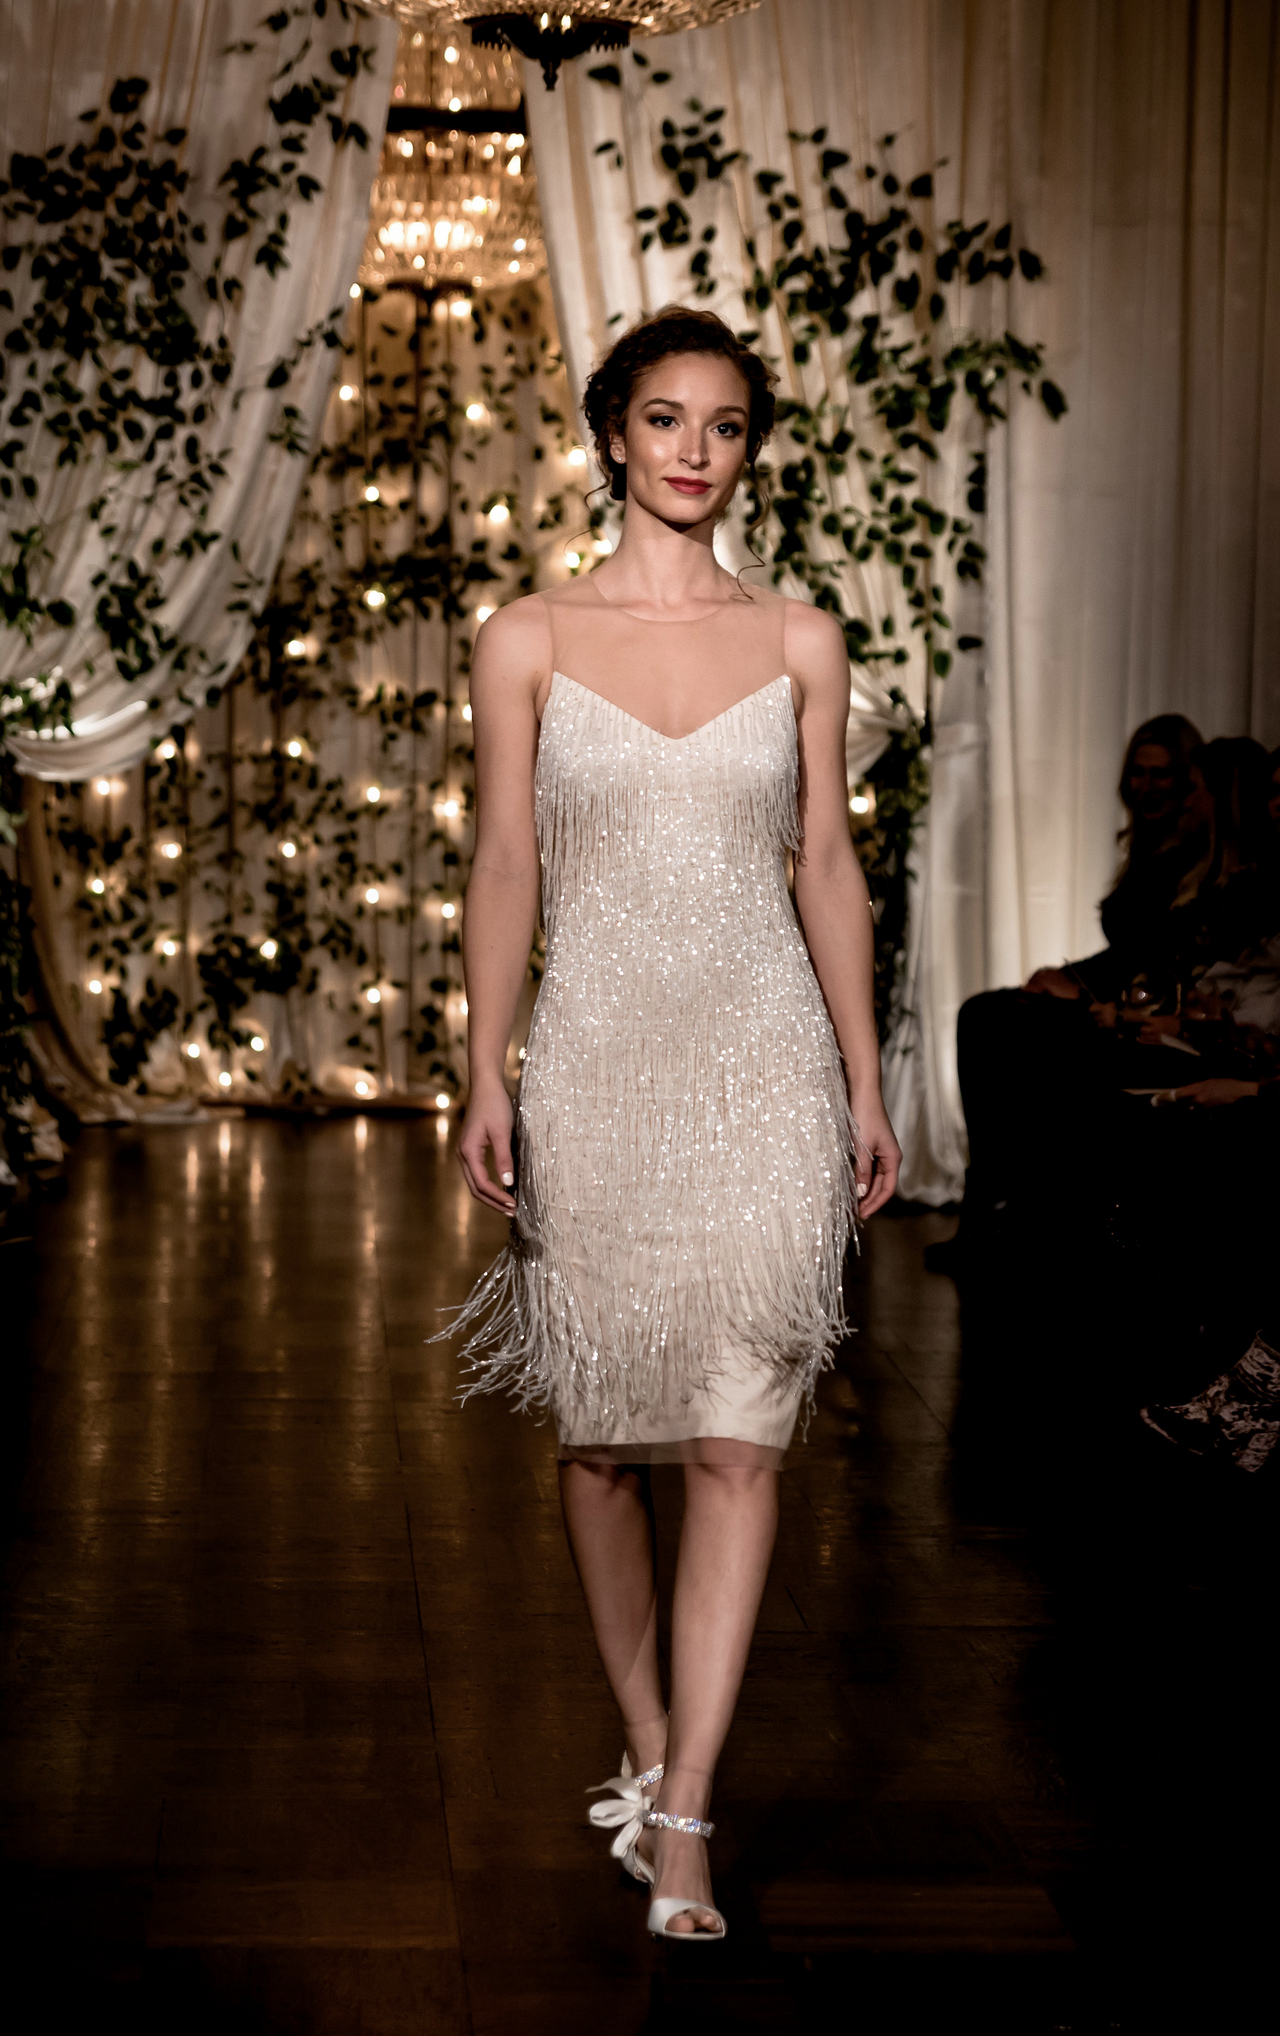 Jenny Yoo Collection, the Reagan dress features delicate